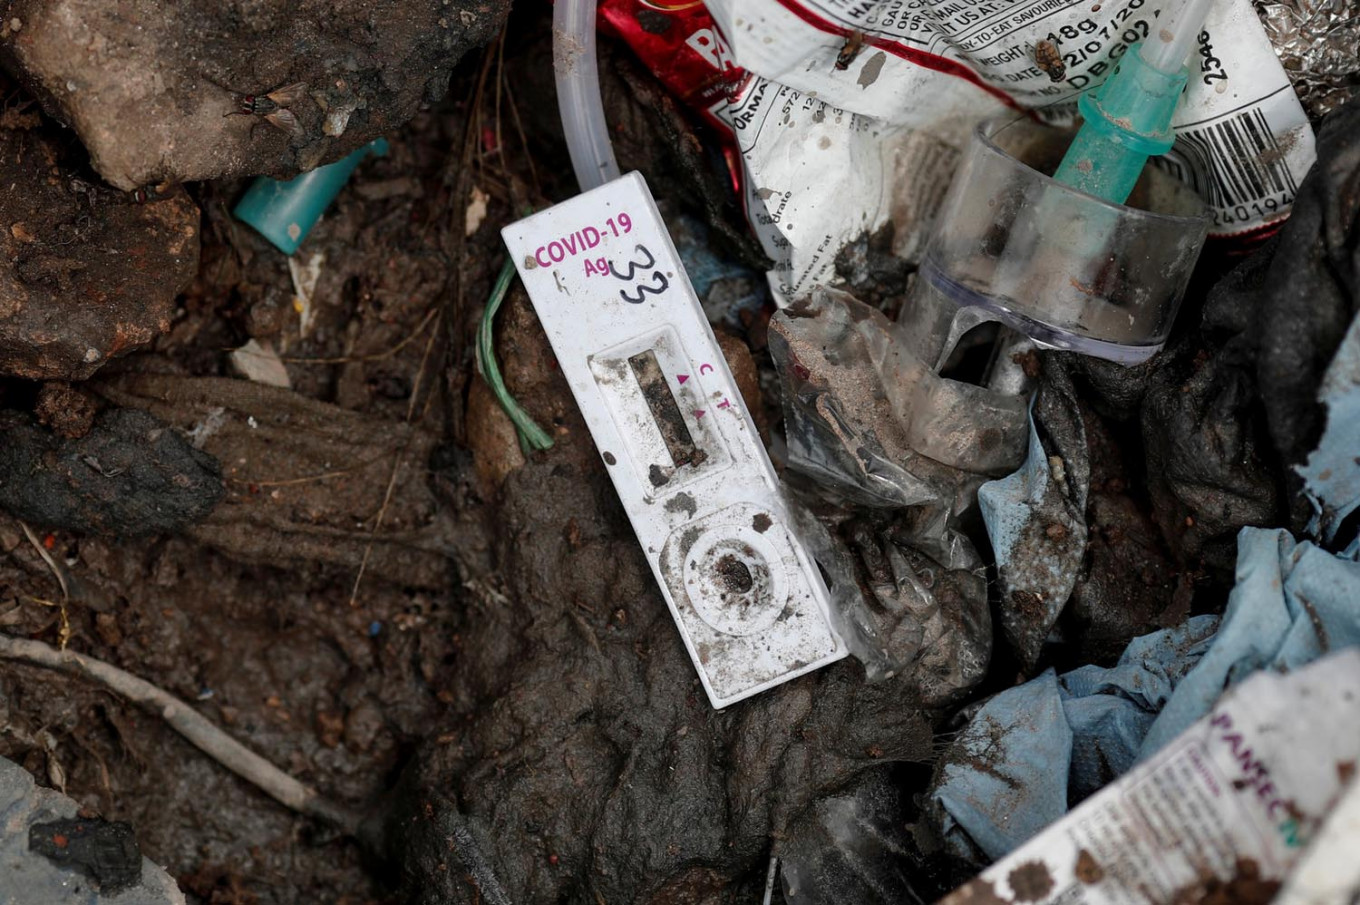 A COVID-19 testing kit lies on the floor at a landfill site, during the coronavirus disease (COVID-19) outbreak, in New Delhi, India, July 22, 2020. Reuters/Adnan Abidi